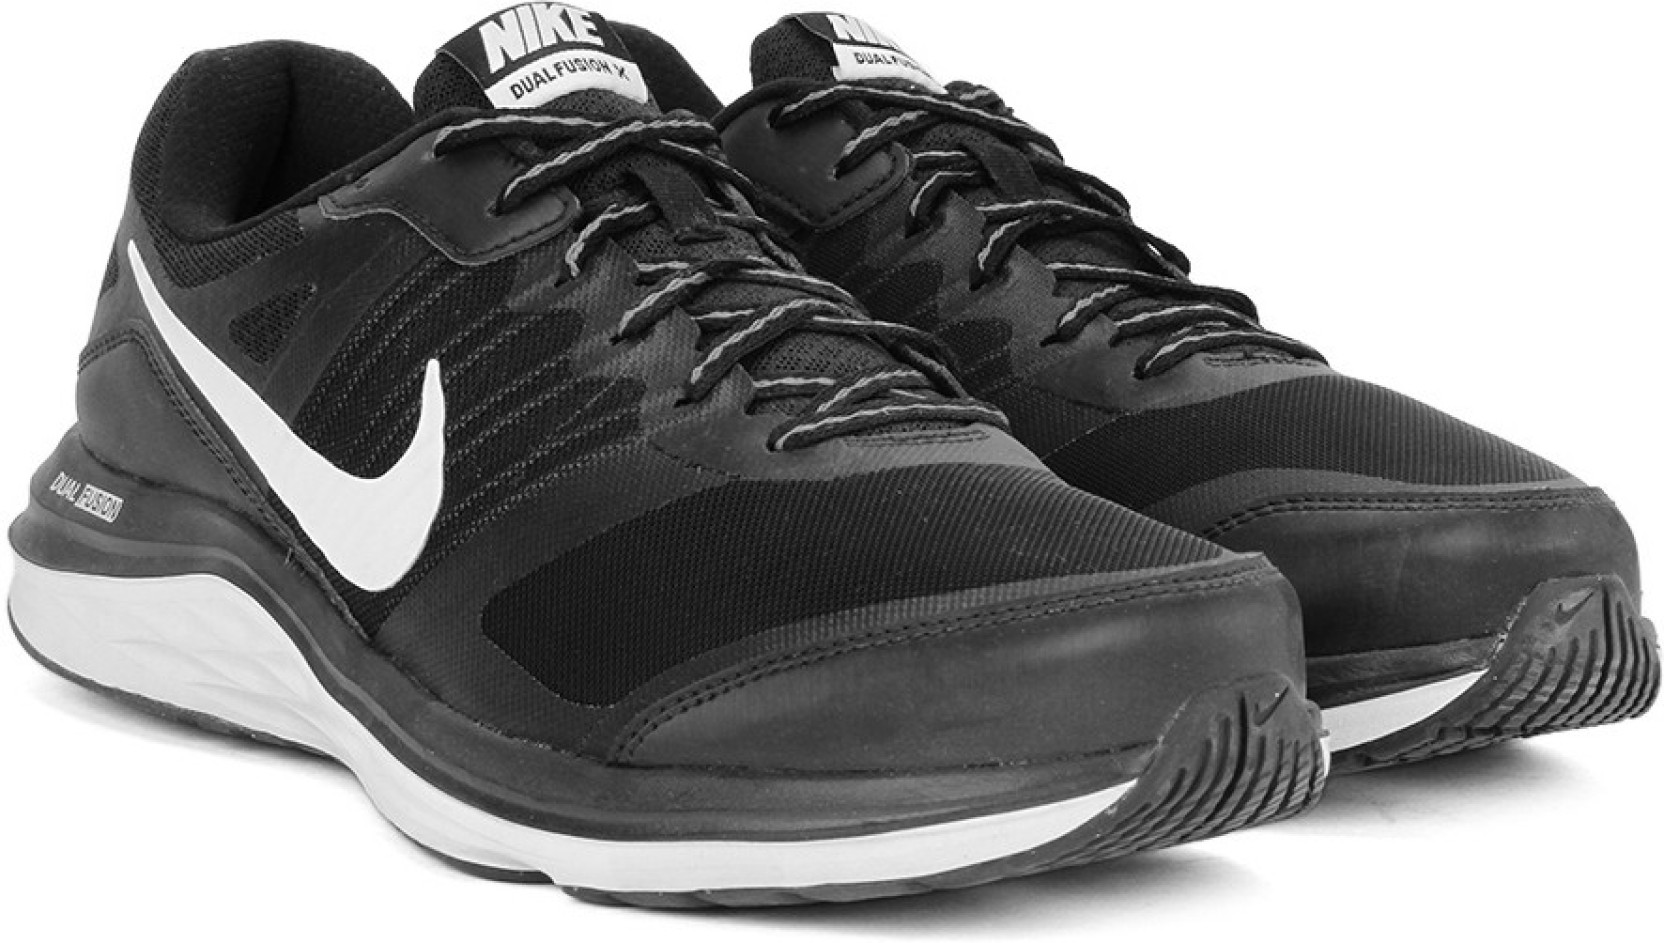 e37075811a499 Nike DUAL FUSION X MSL Running Shoes For Men - Buy BLACK WHITE-COOL ...